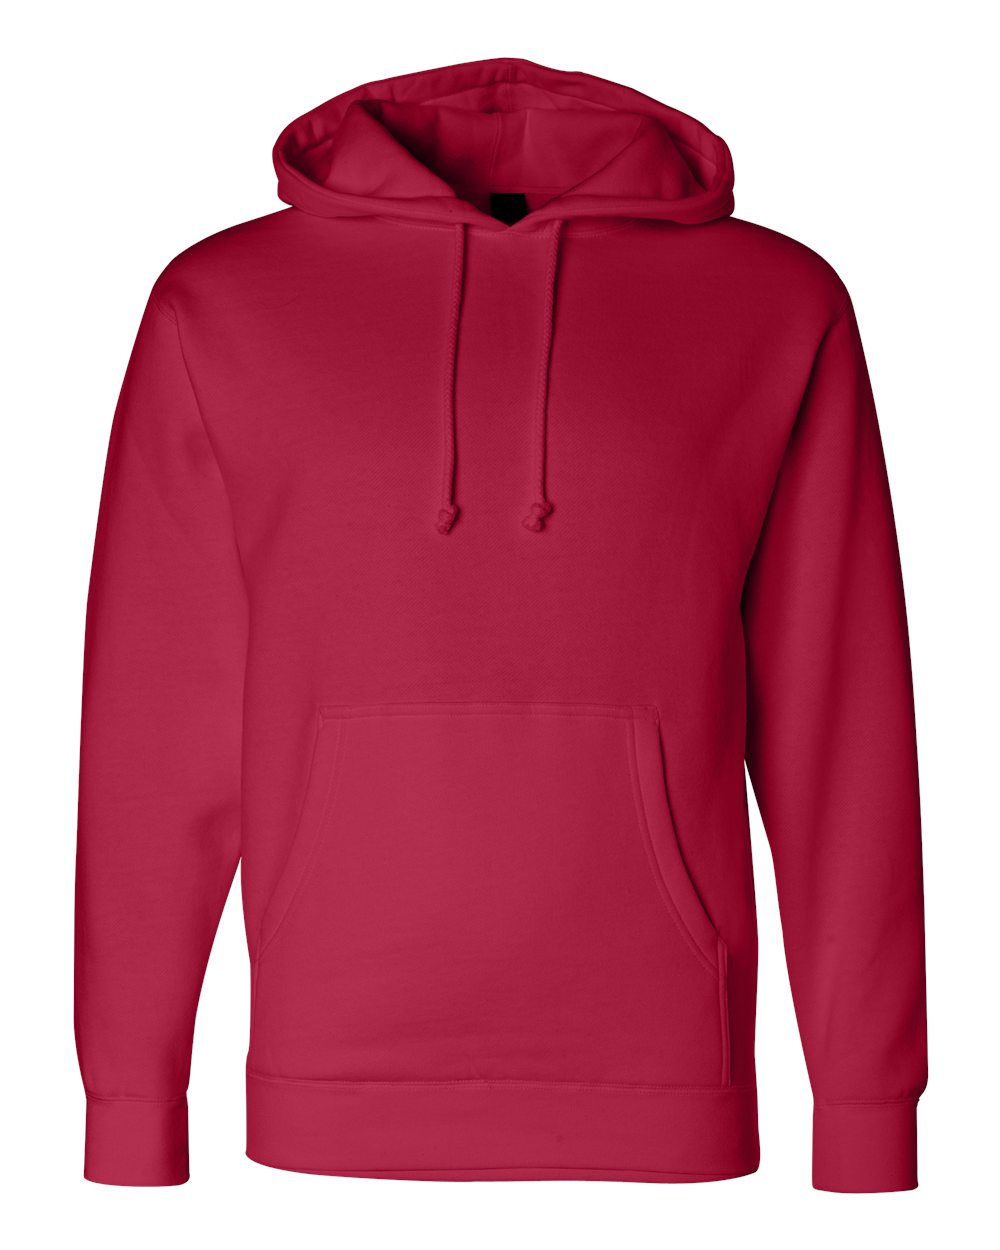 Independent-Trading-Co-Mens-Hooded-Pullover-Sweatshirt-IND4000-up-to-3XL miniature 60